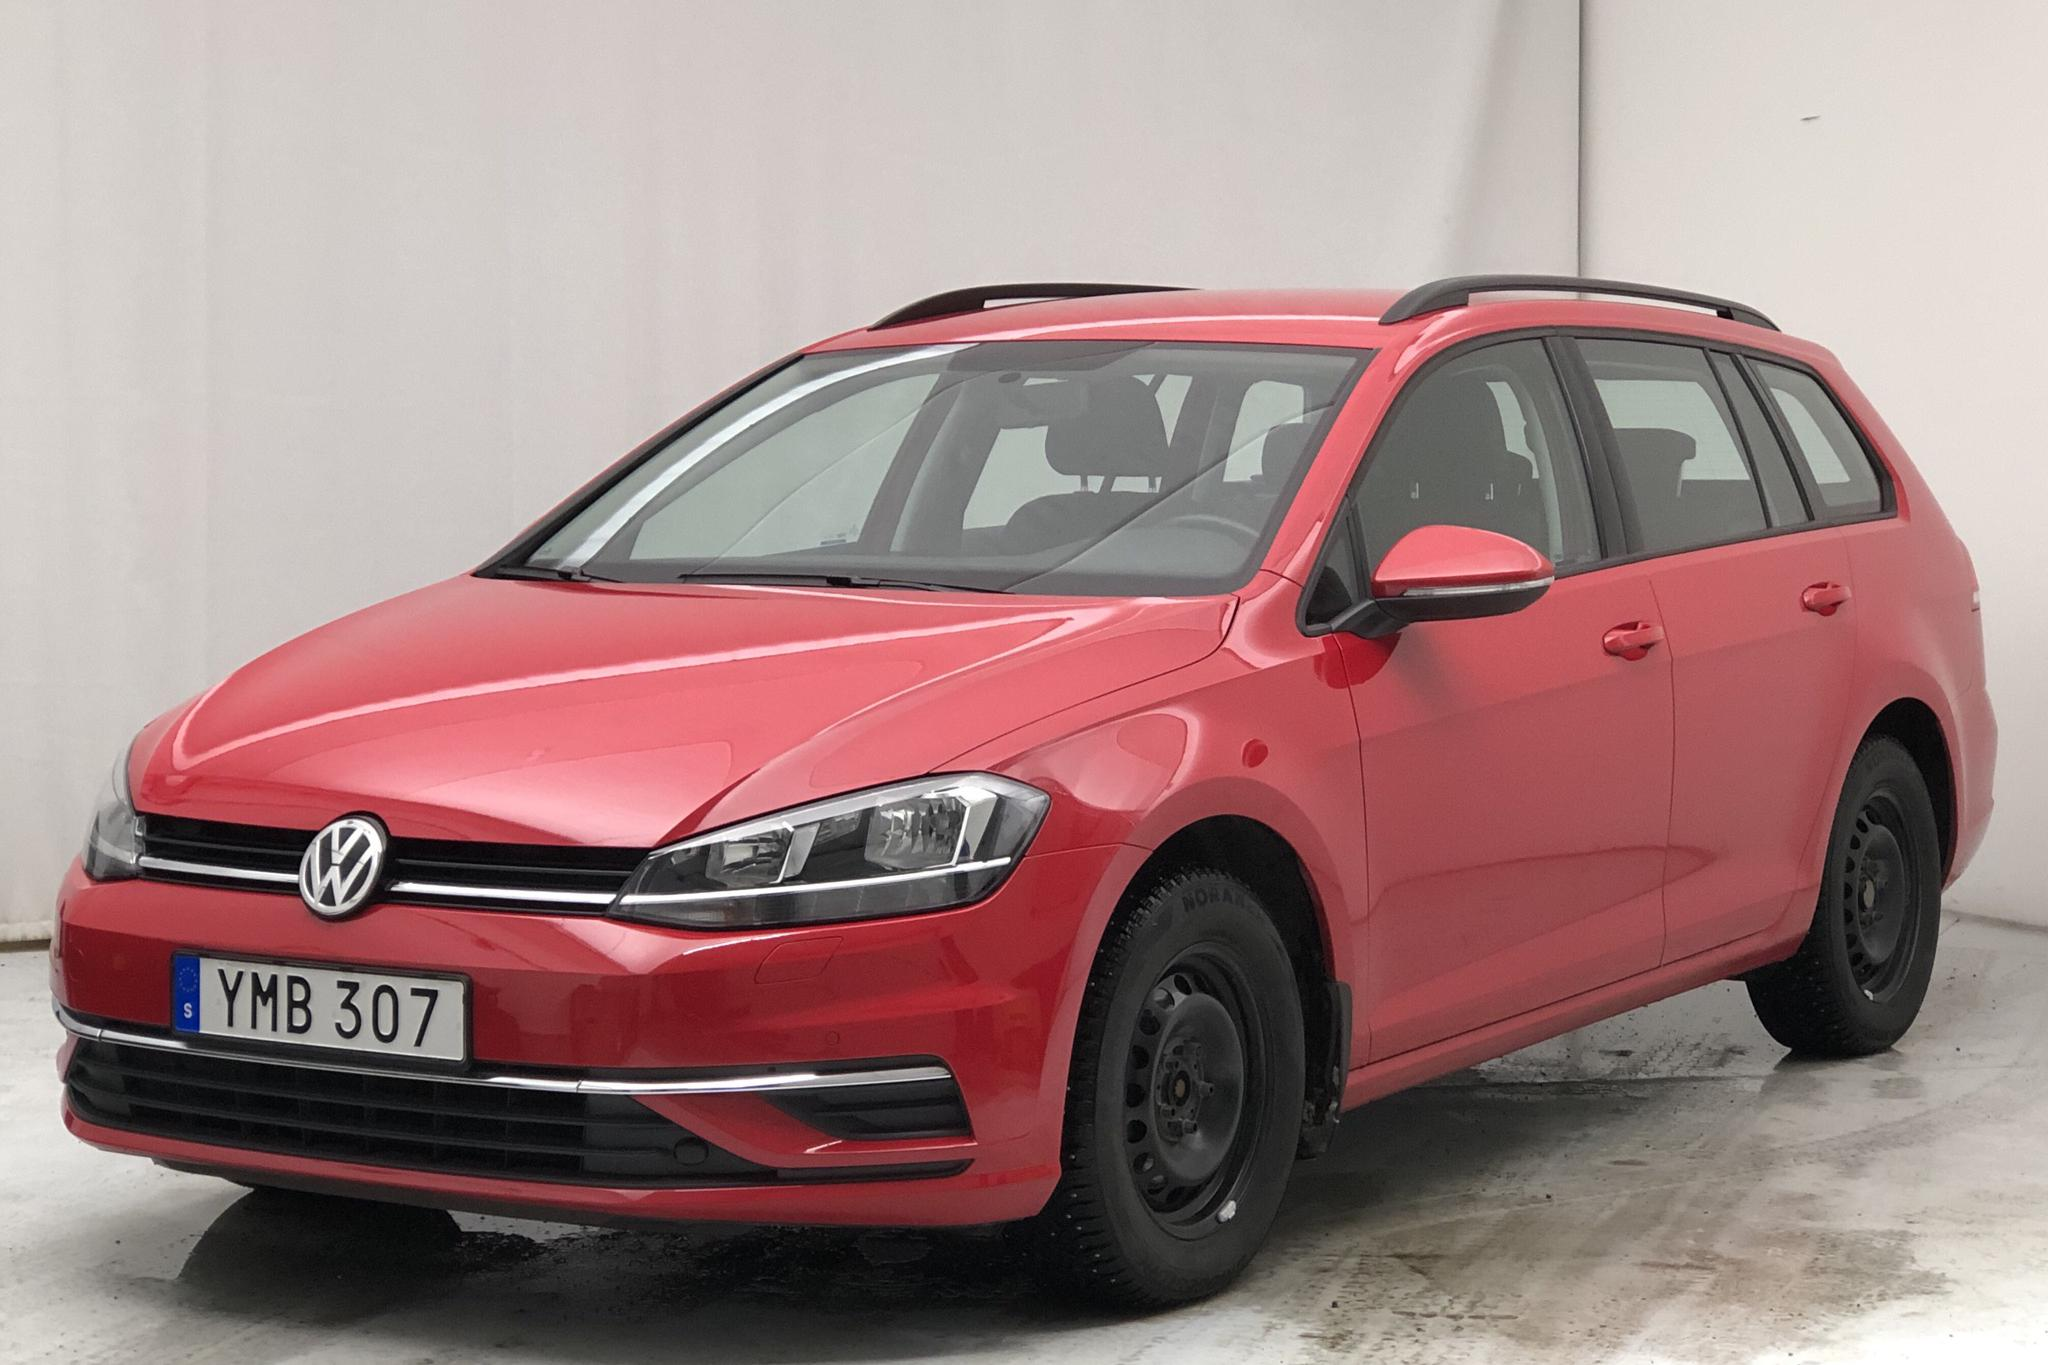 VW Golf VII 1.4 TSI Multifuel Sportscombi (125hk) - 31 200 km - Manual - red - 2017